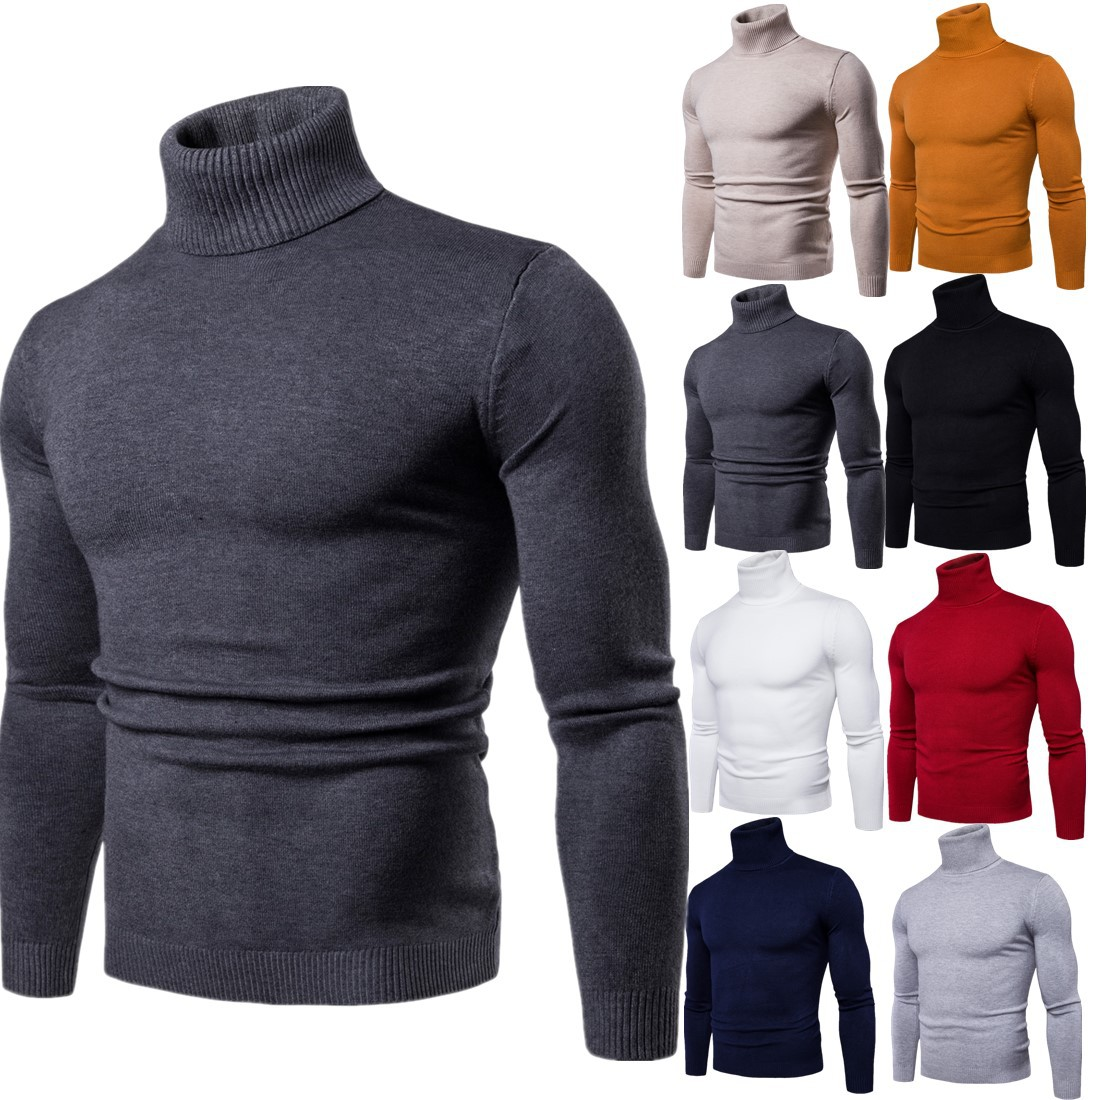 FAVOCENT Winter Warm Turtleneck Sweater Men Fashion Solid Knitted Mens Sweaters 2018 Casual Male Double Collar Slim Fit Pullover image